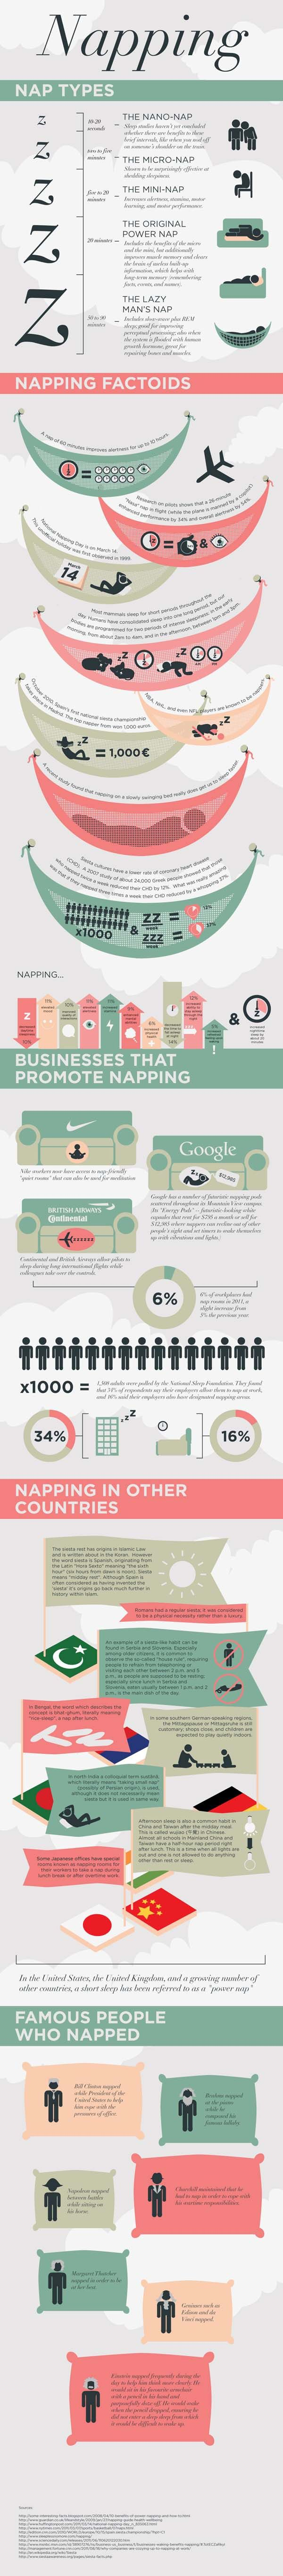 The Power of Napping - This infographic has sent 63,125 people to my website in the past 12 months!